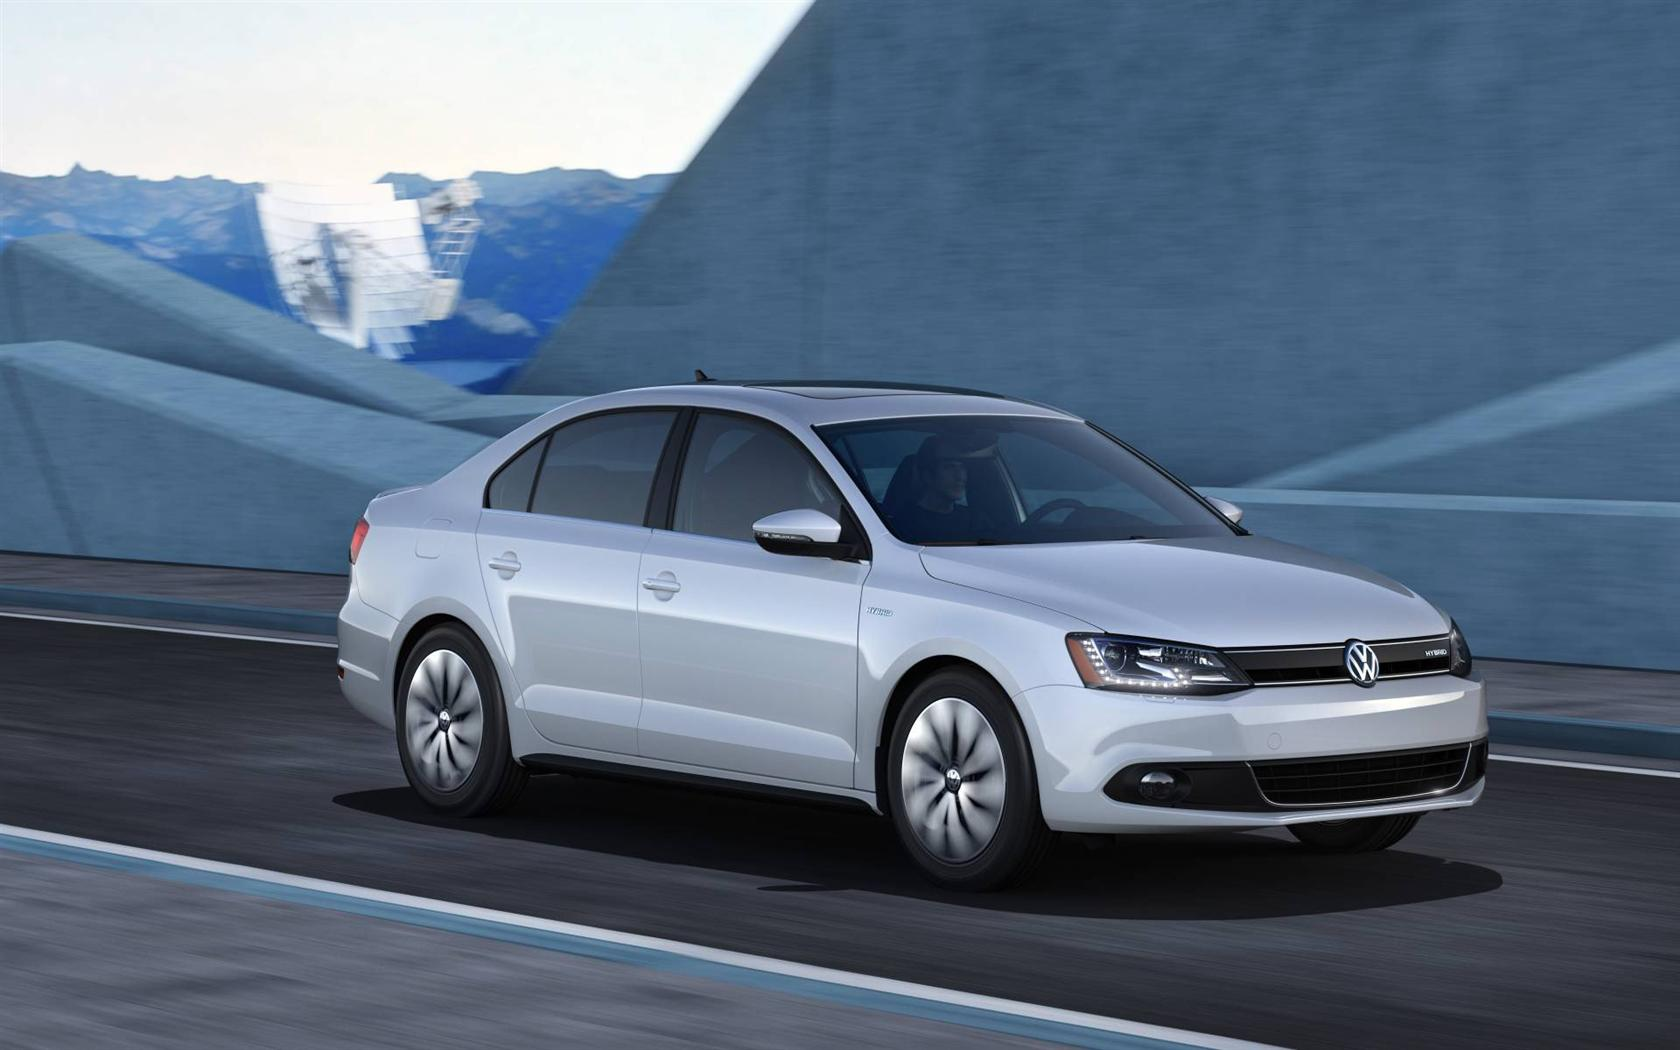 volkswagen jetta Sedan information image credit wallpapers Desktop Download